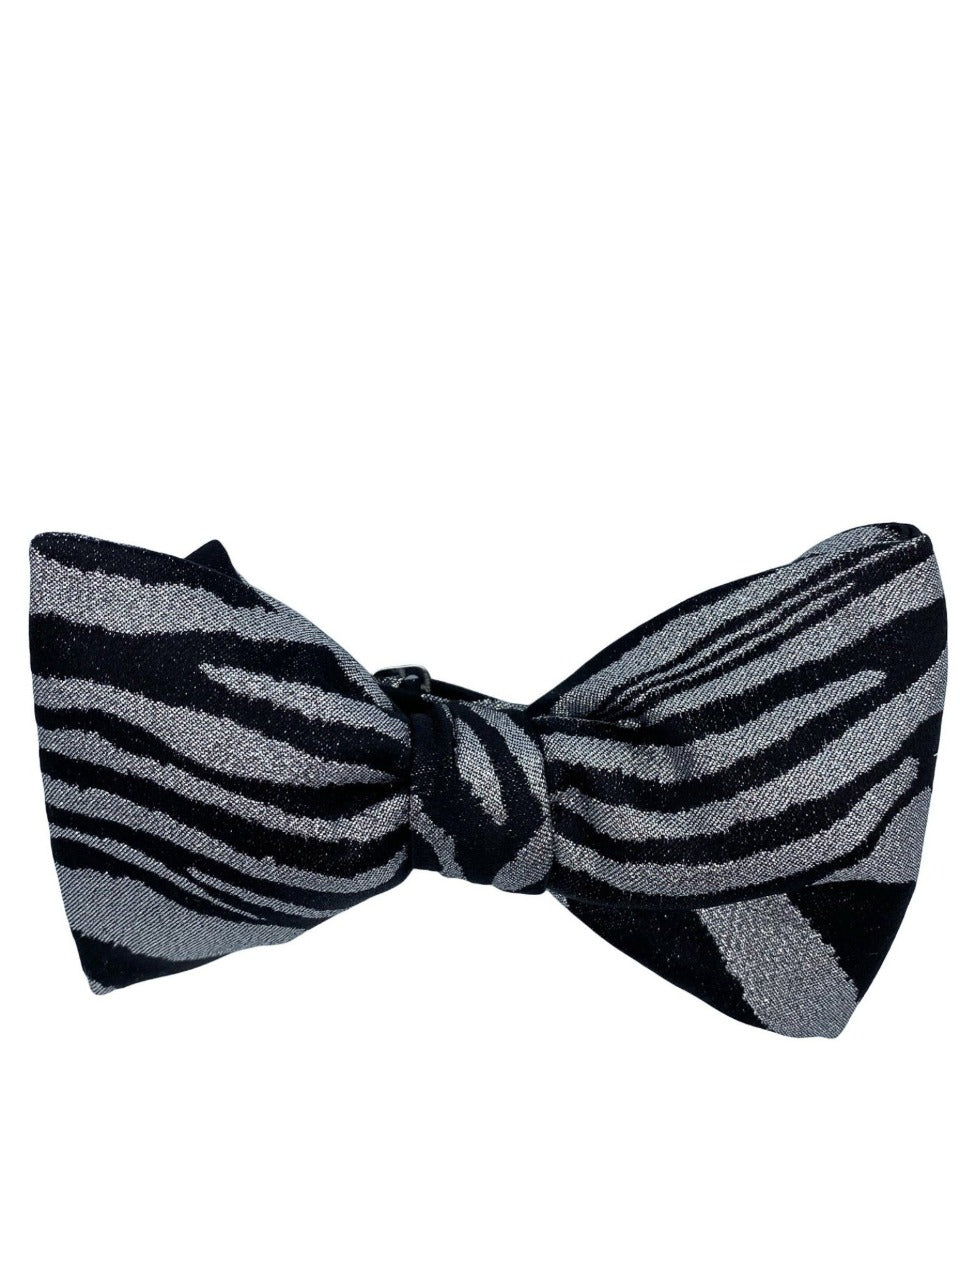 silver lurex pre tied bow made in italy